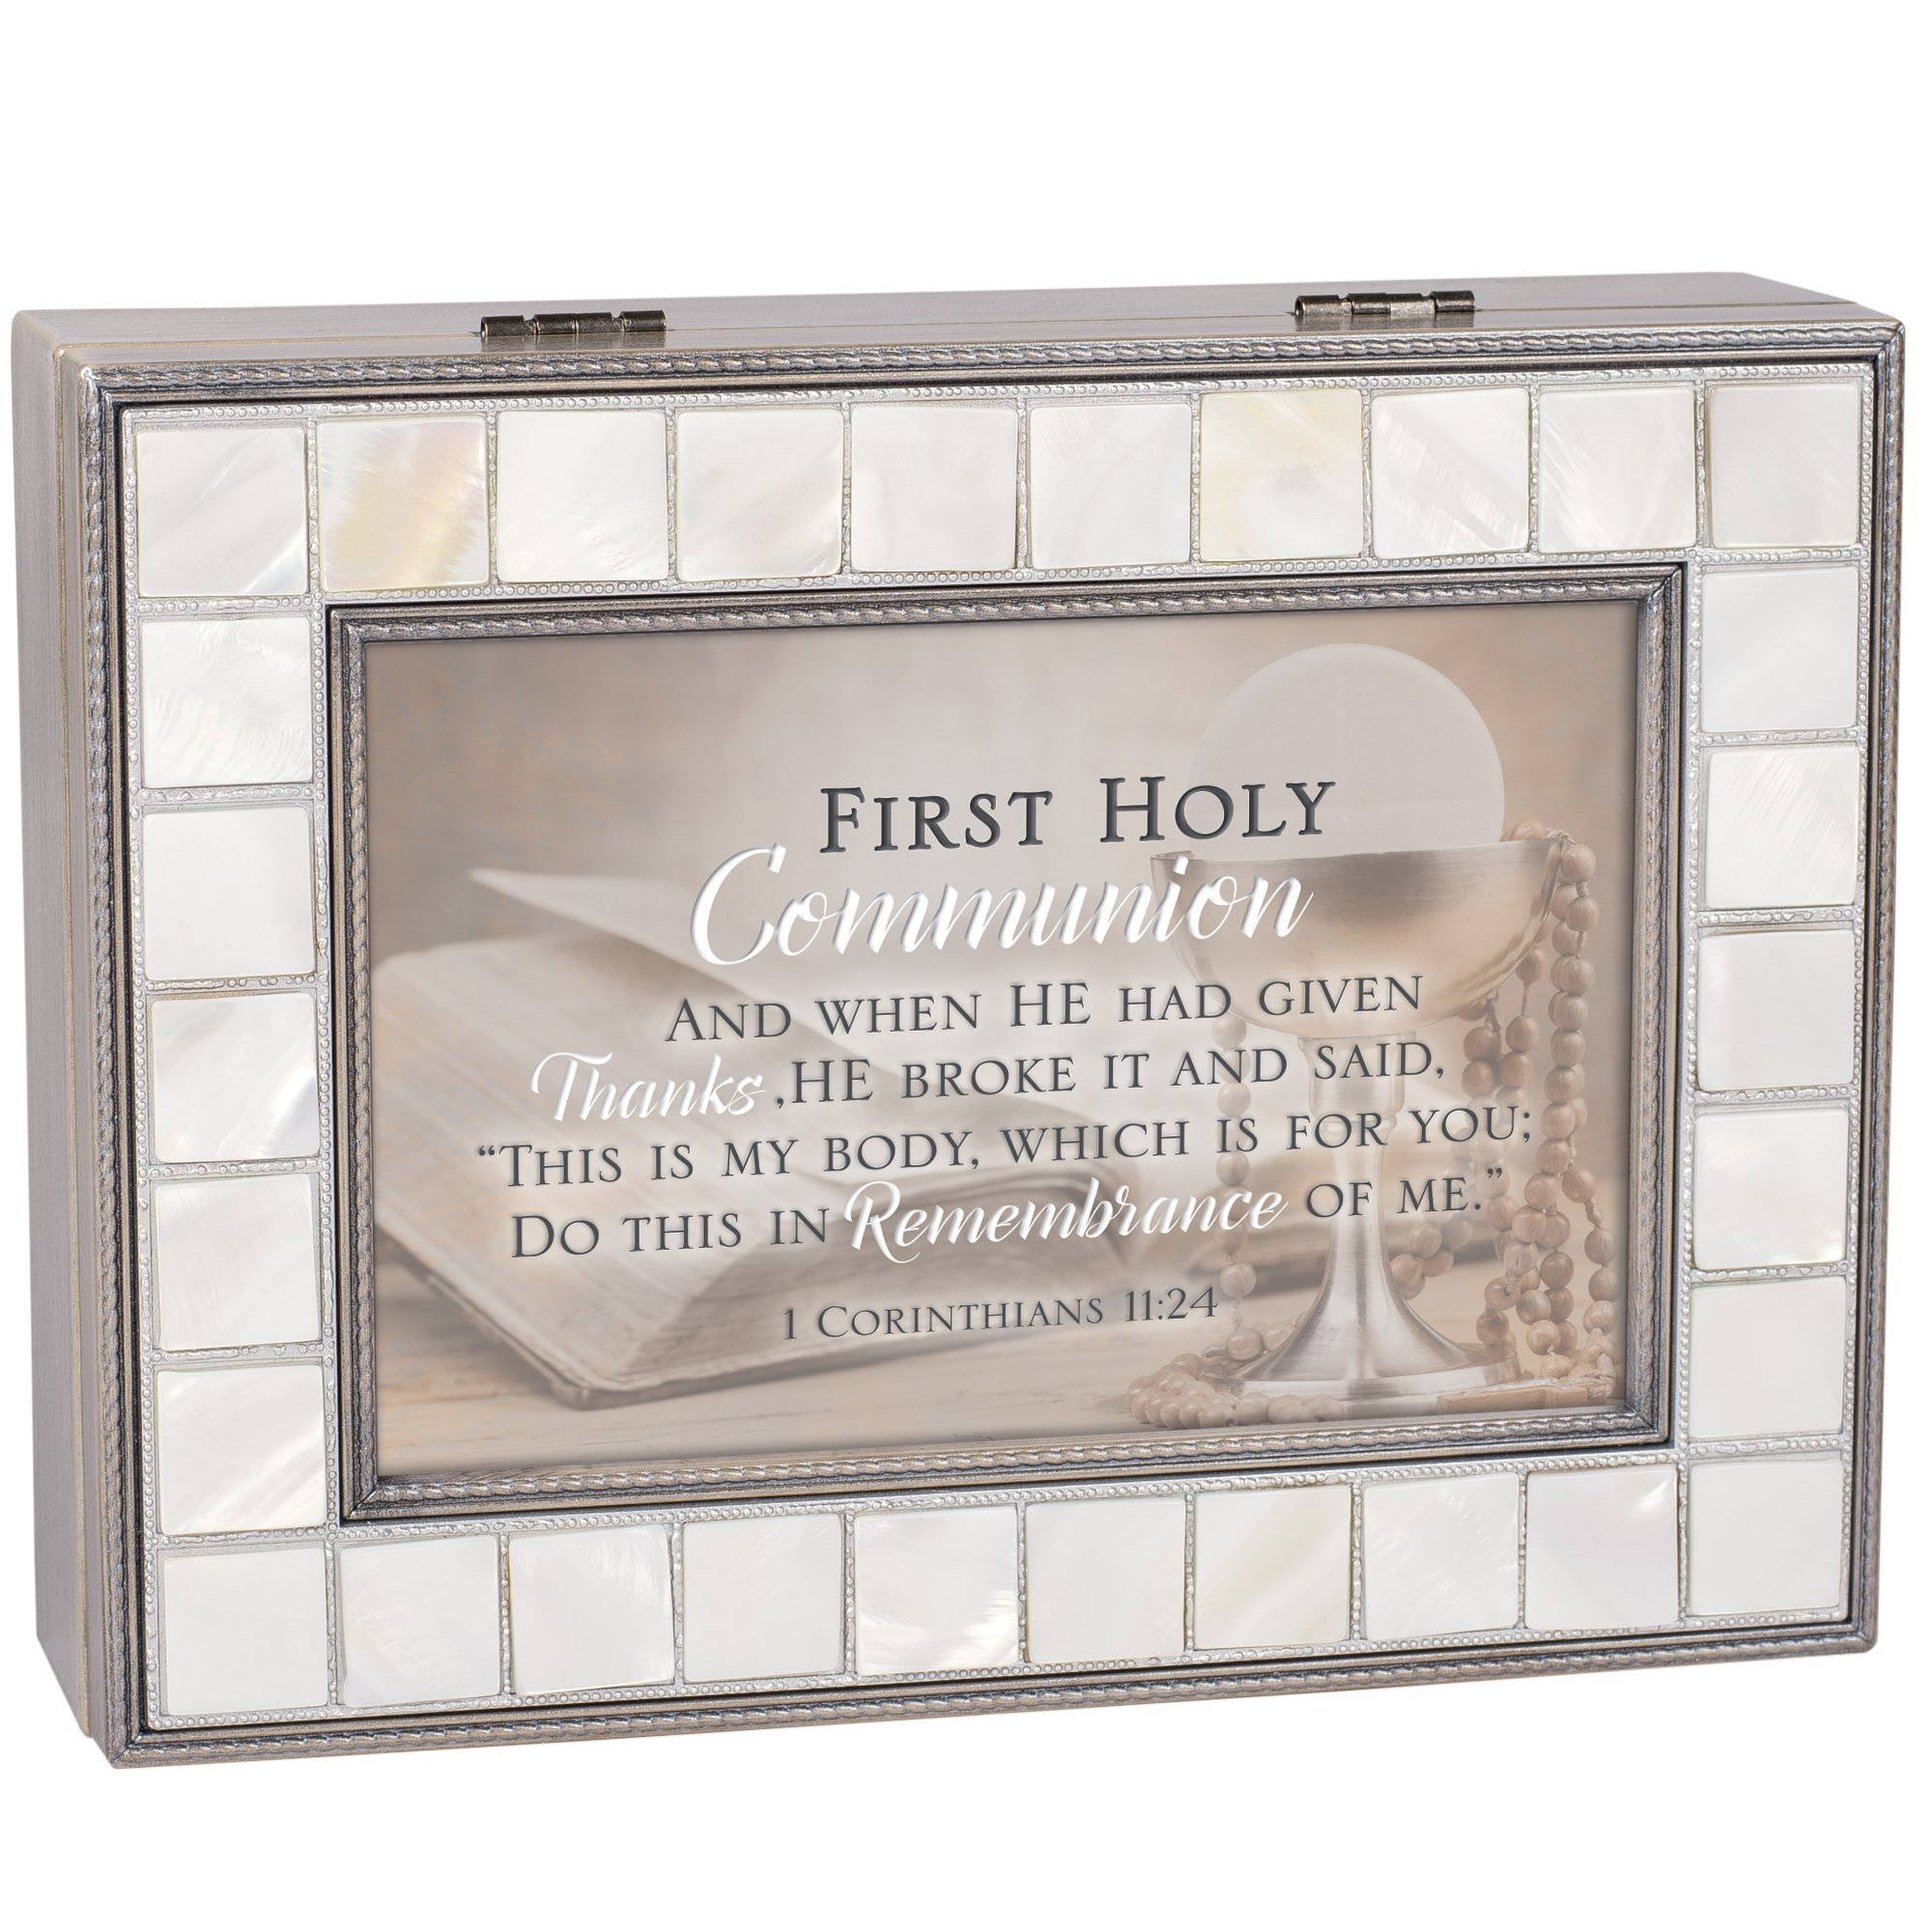 Cottage Garden First Communion This My Body Mother of Pearl Grey Jewelry Music Box Plays Ave Maria by Cottage Garden (Image #3)